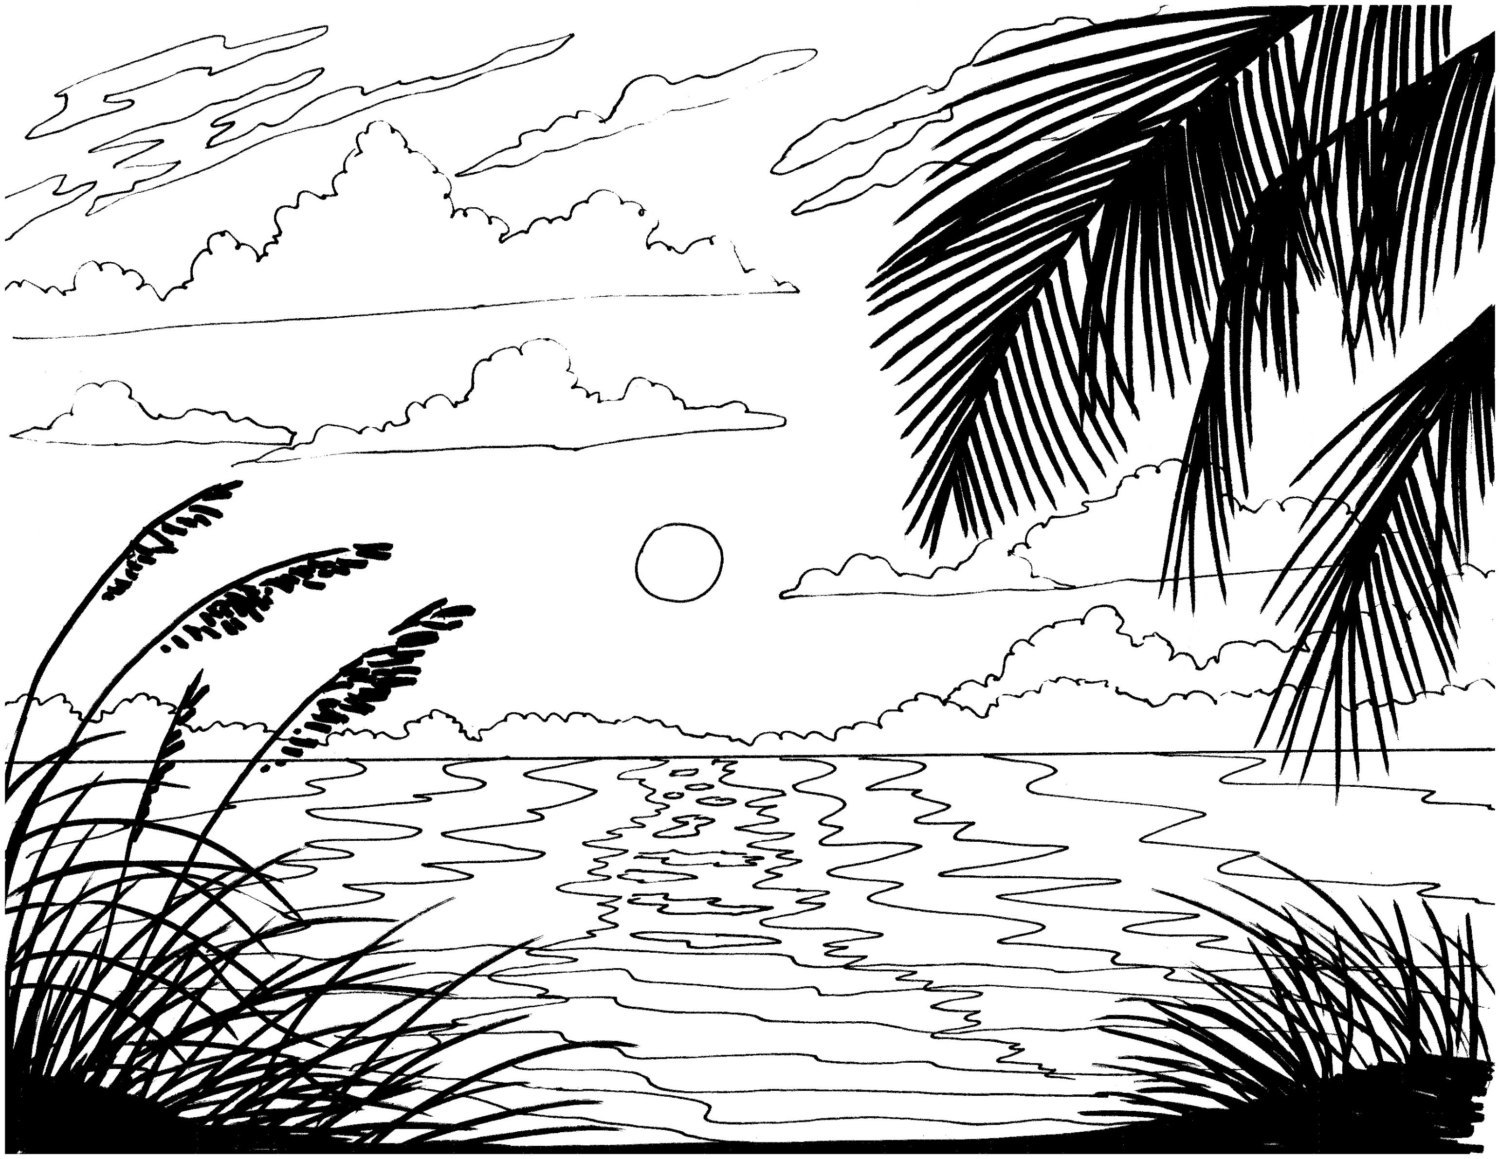 coloring beach pictures beach sunrise coloring page embroidery pattern beach art pictures beach coloring